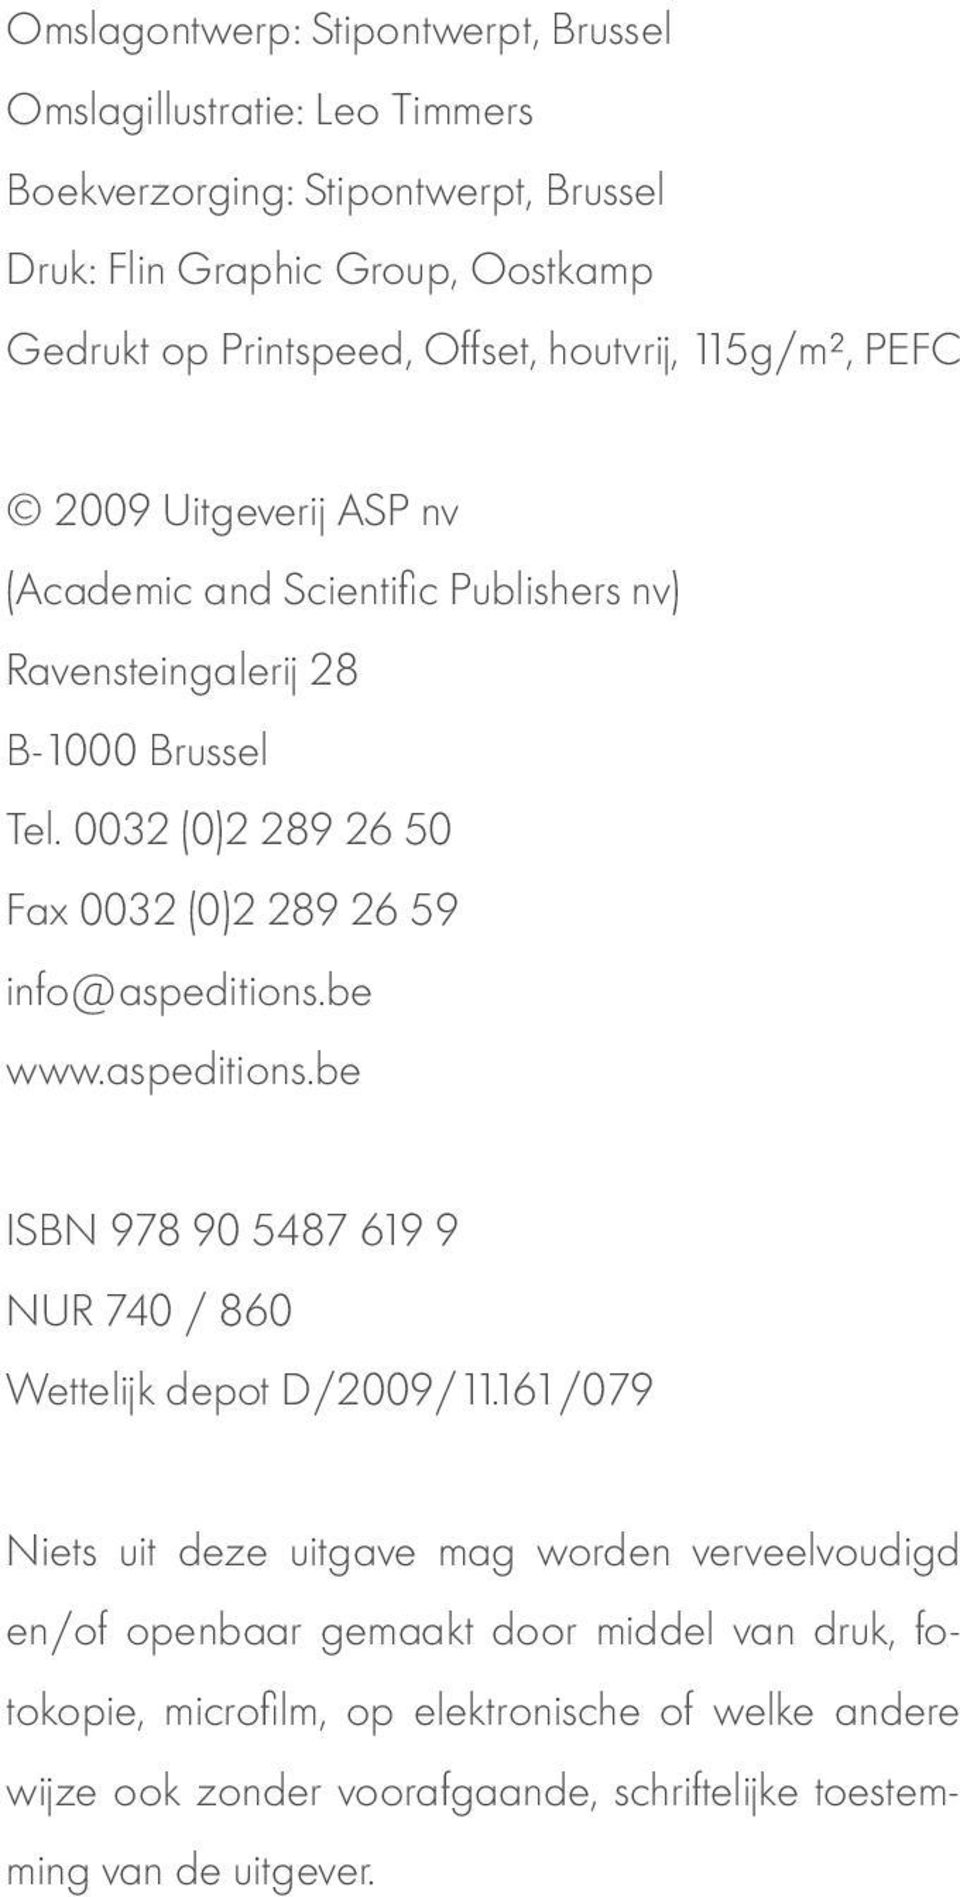 0032 (0)2 289 26 50 Fax 0032 (0)2 289 26 59 info@aspeditions.be www.aspeditions.be ISBN 978 90 5487 619 9 NUR 740 / 860 Wettelijk depot D/2009/11.